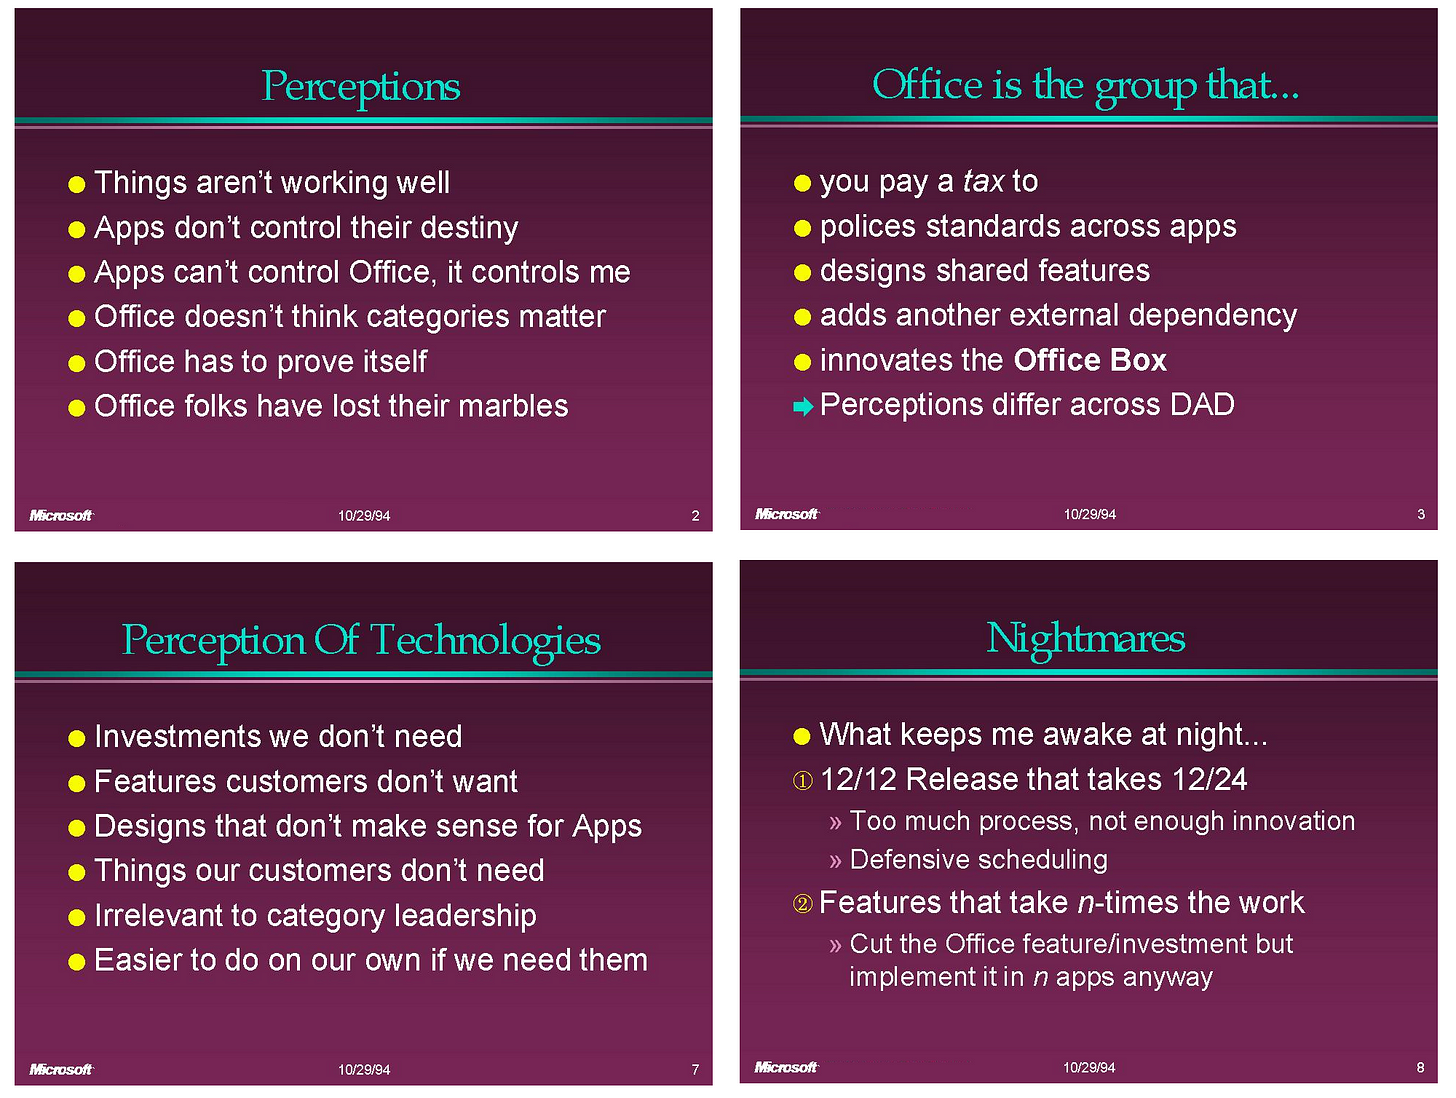 Slide: Perceptions.  Things aren't working well Apps don't control their destiny Apps can't control Office, it controls me Office doesn't think categories matter Office has to prove itself Office folks have lost their marbles  Slide: Office is the group that... you pay a tax to polices standards across apps designs shared features adds another external dependency innovates the Office Box Perceptions differ across DAD  Slide: Perception of technologies Investments we don't need Features customers don't want Designs that don't make sense for Apps Things our customers don't need Irrelevant to category leadership Easier to do on our own if we need them   Slide: Nightmares What keeps me awake at night... 12/12 Release that takes 12/24 Too much process, not enough innovation Defensive scheduling Features that take n-times the work Cut the Office feature/investment but implement it in n apps anyway